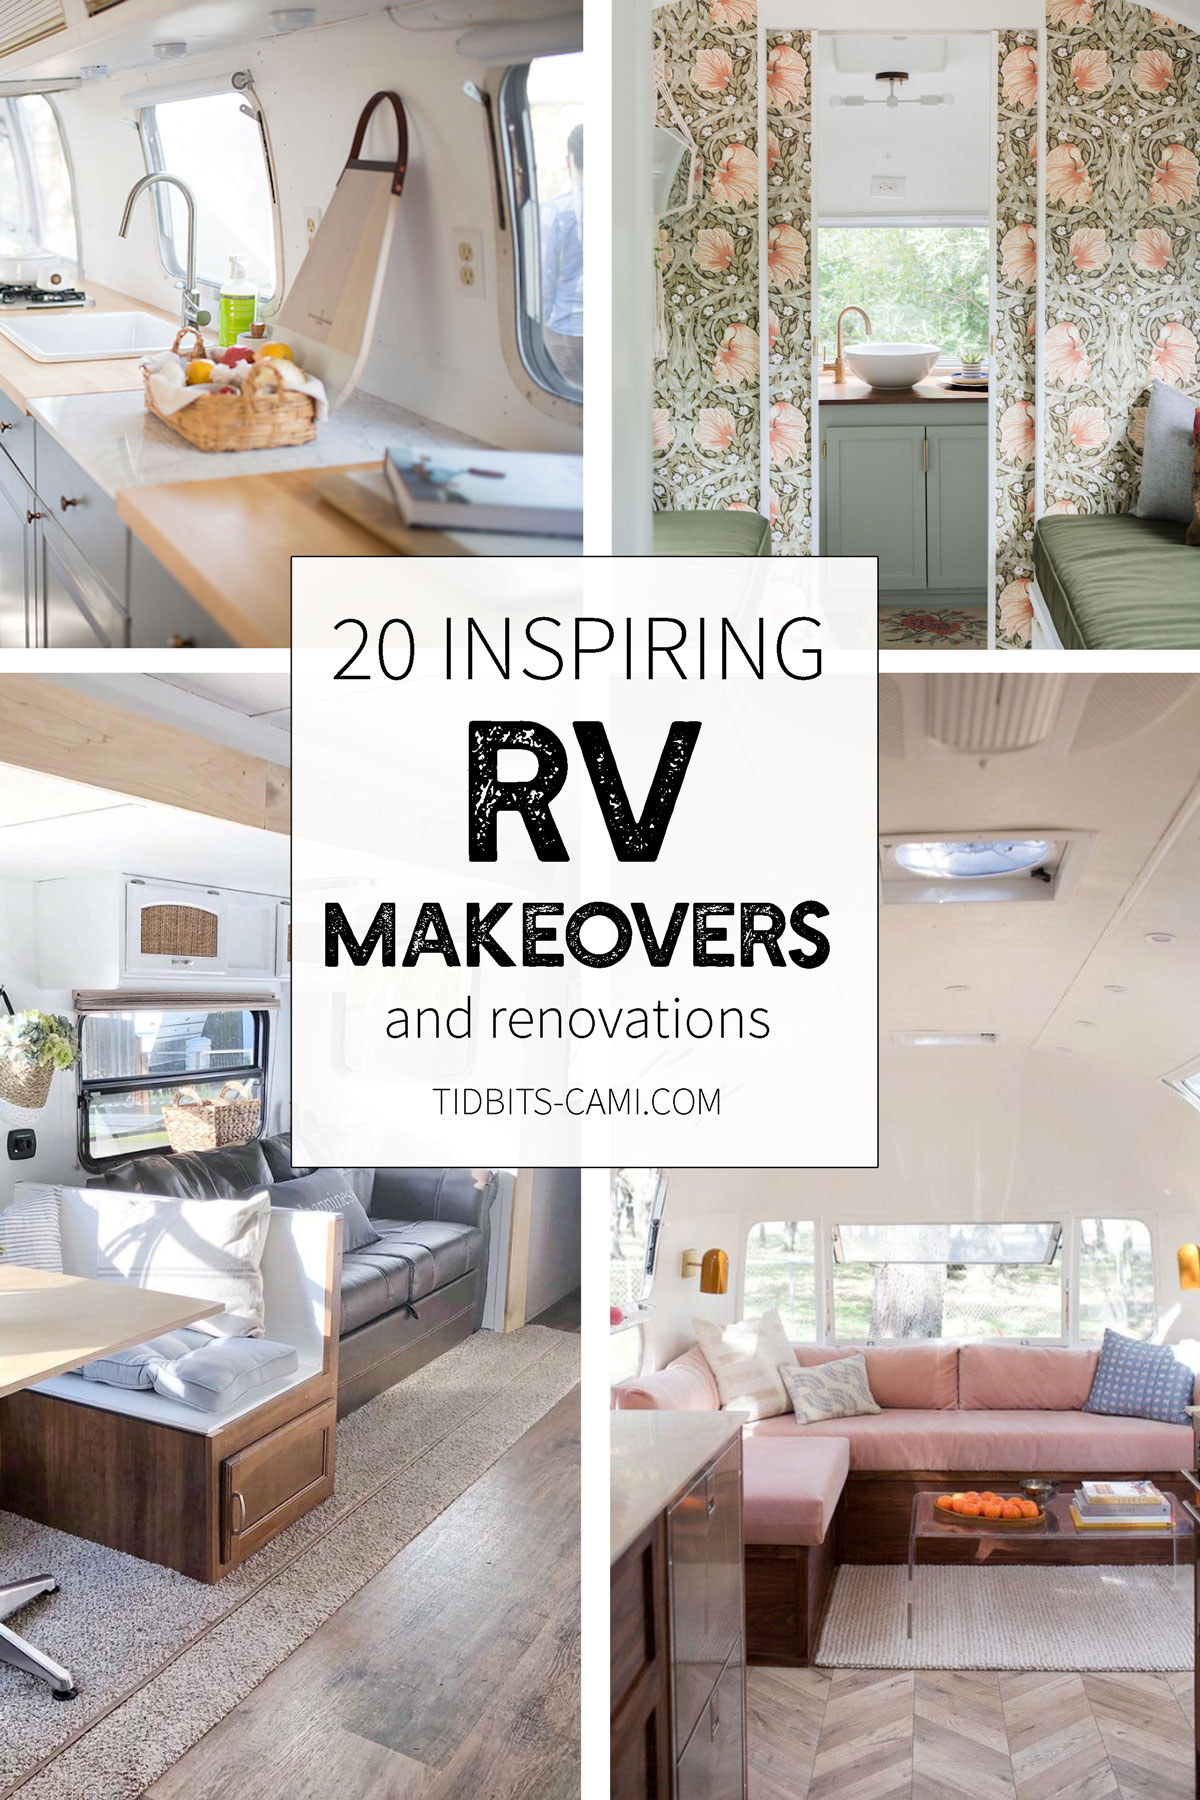 20 Inspiring RV Makeovers - Tidbits